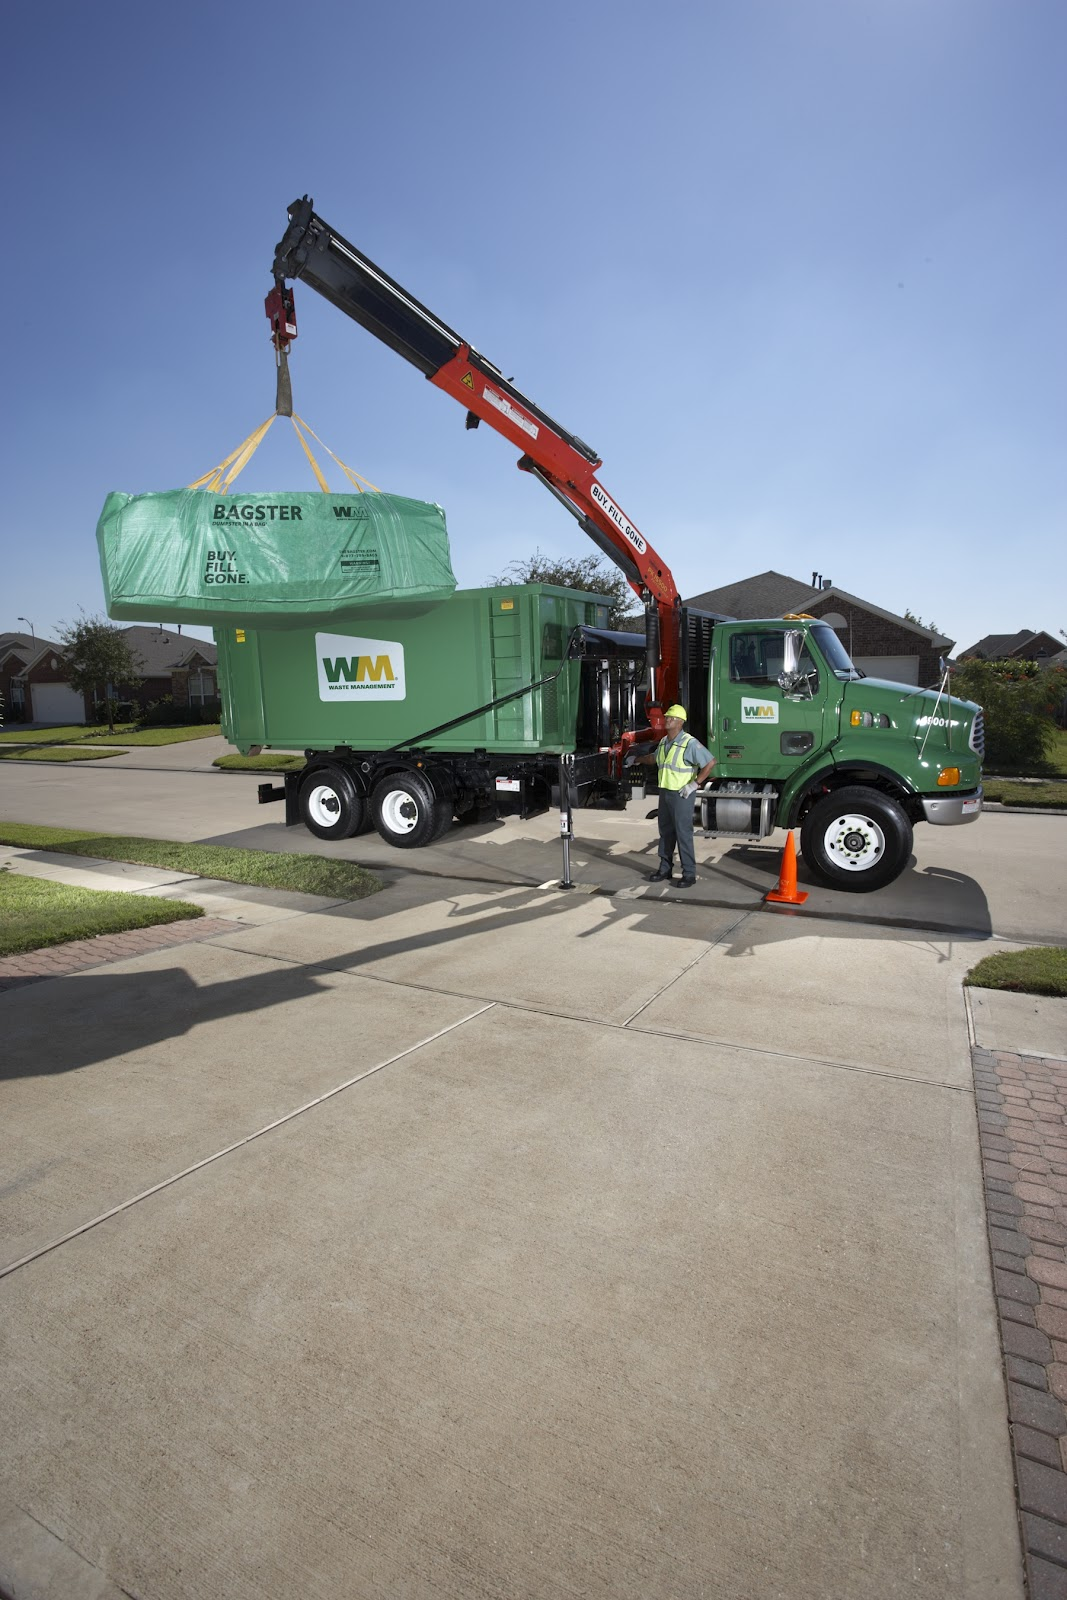 Waste management bagster collection coupon : Target coupon code 20